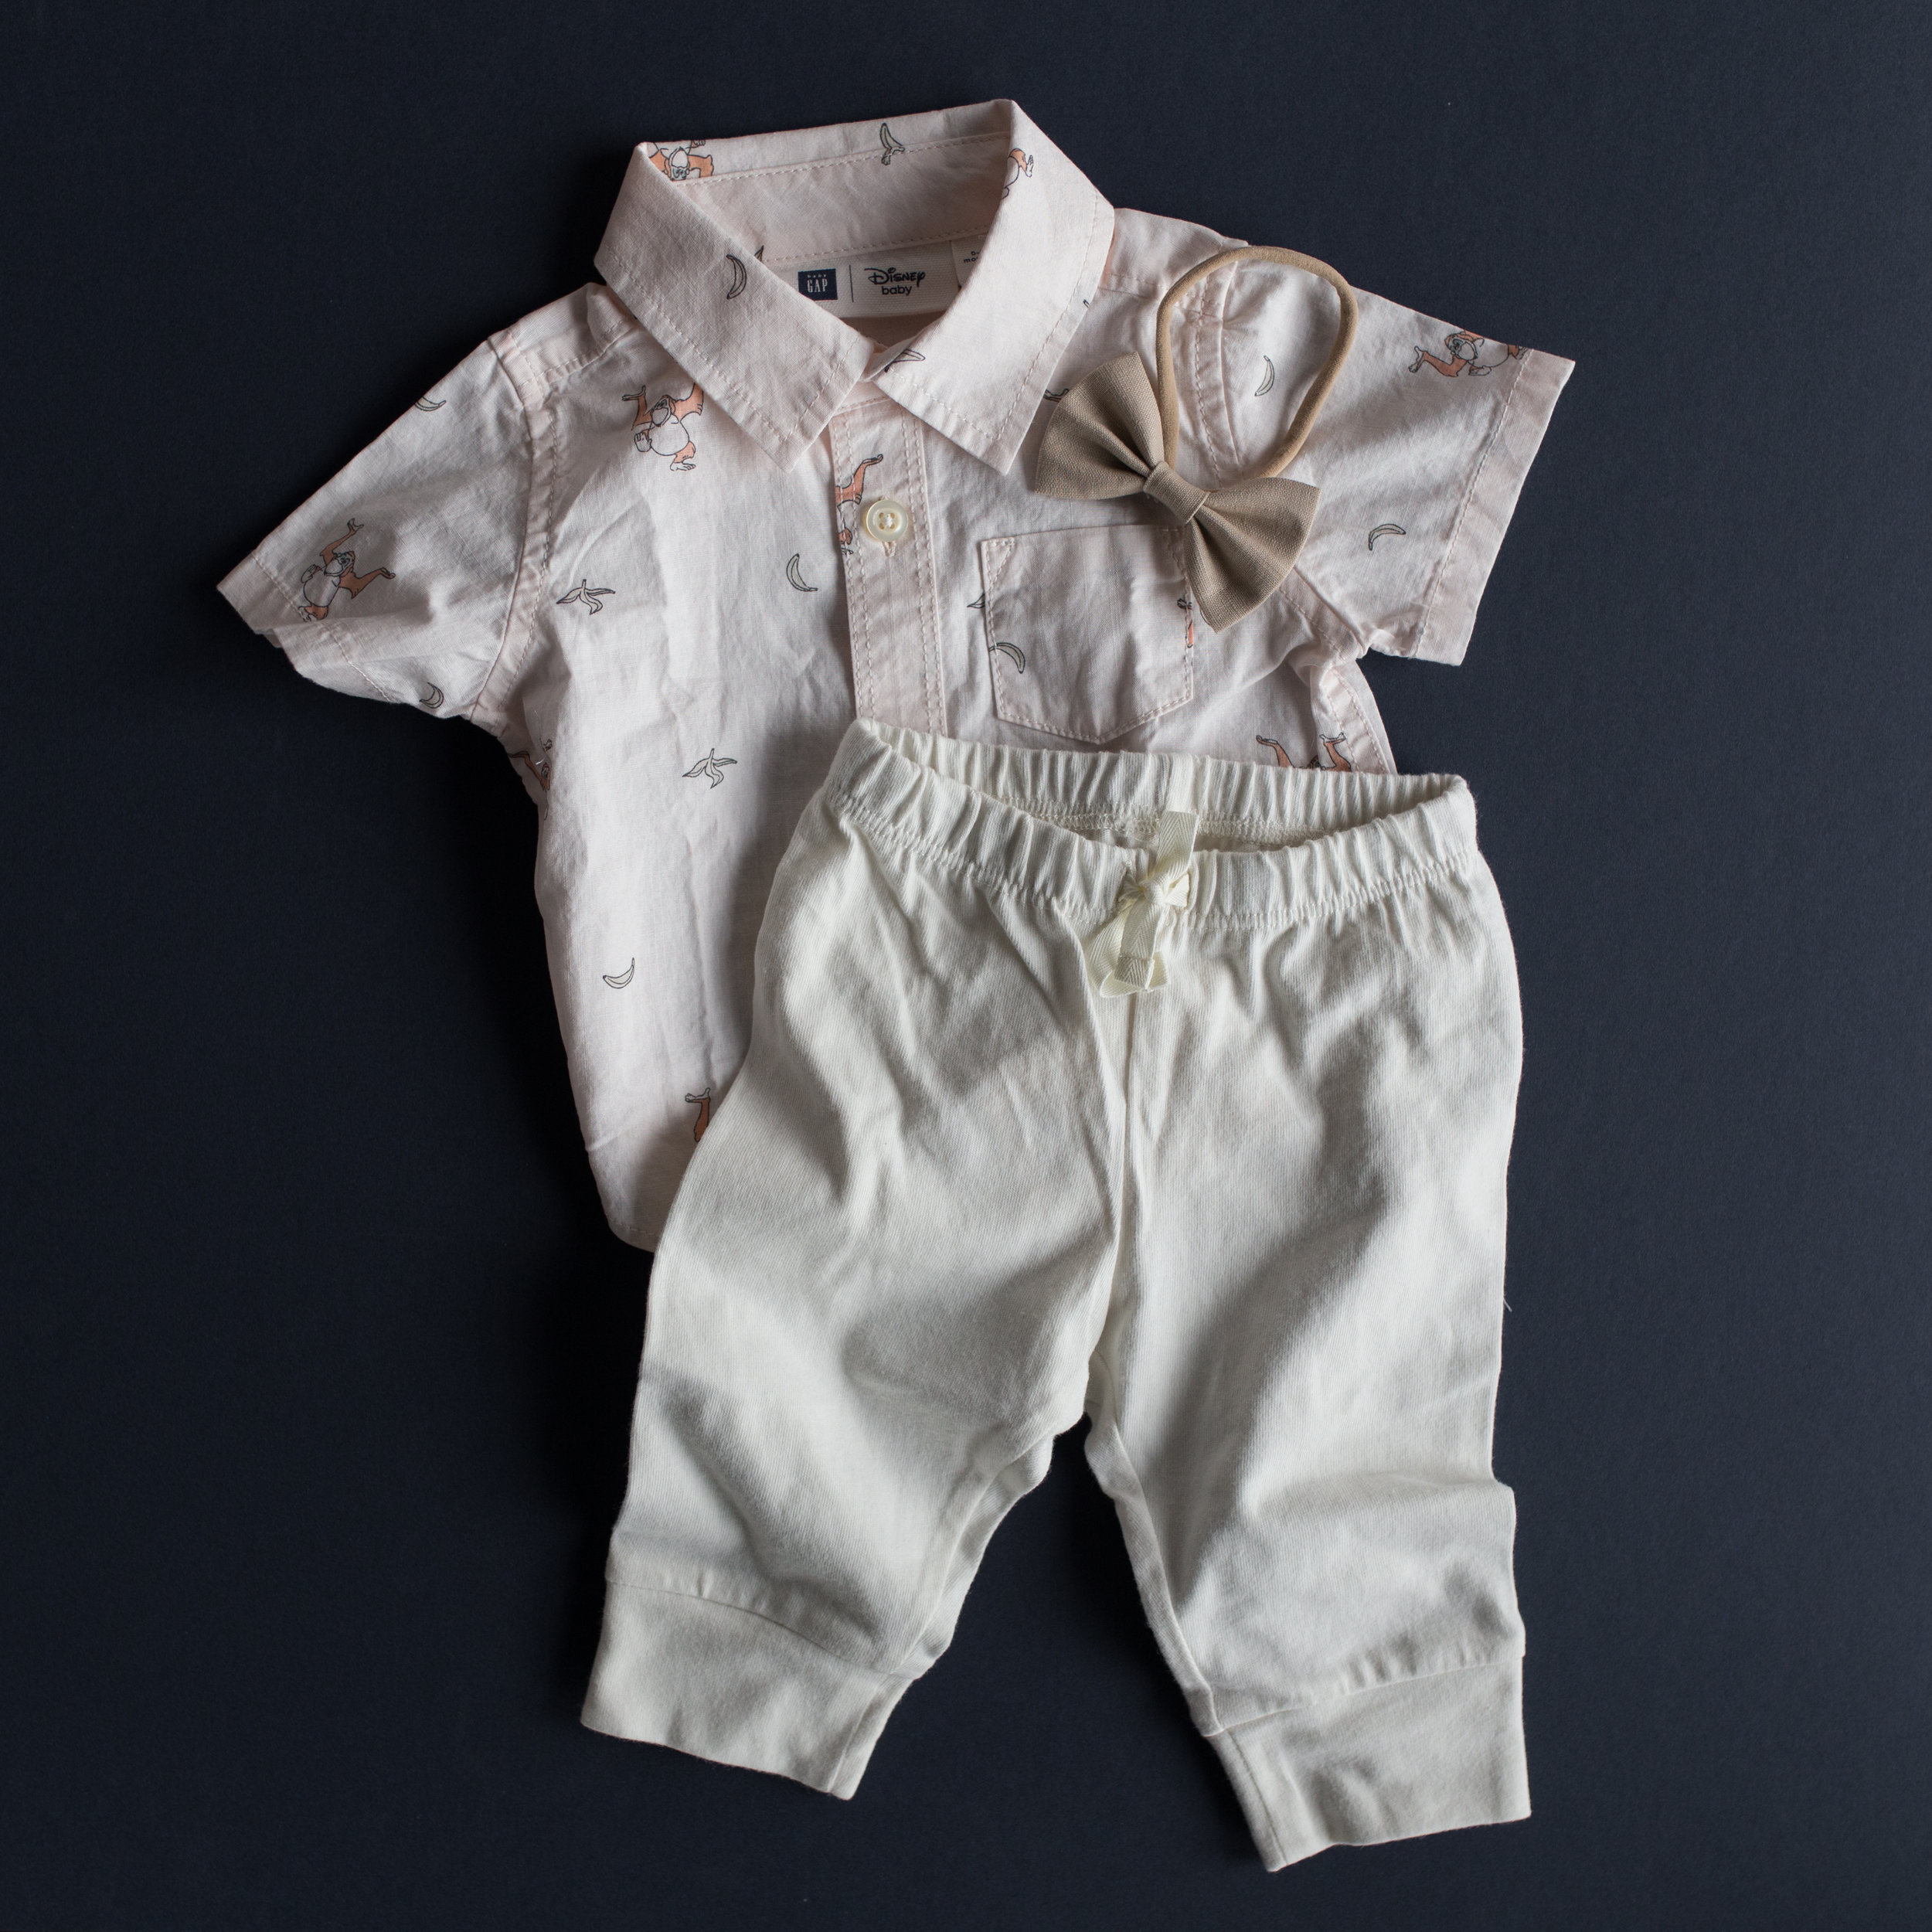 Most darling Disney Jungle Book shirt (sold out online in pink color, but available in white) $17.00 and ivory banded pants $16 from Gap!   http://www.gap.com/browse/product.do?cid=1027404&pcid=95684&vid=1&pid=394285002    http://www.gap.com/browse/product.do?cid=1027404&pcid=95684&vid=1&pid=394285002